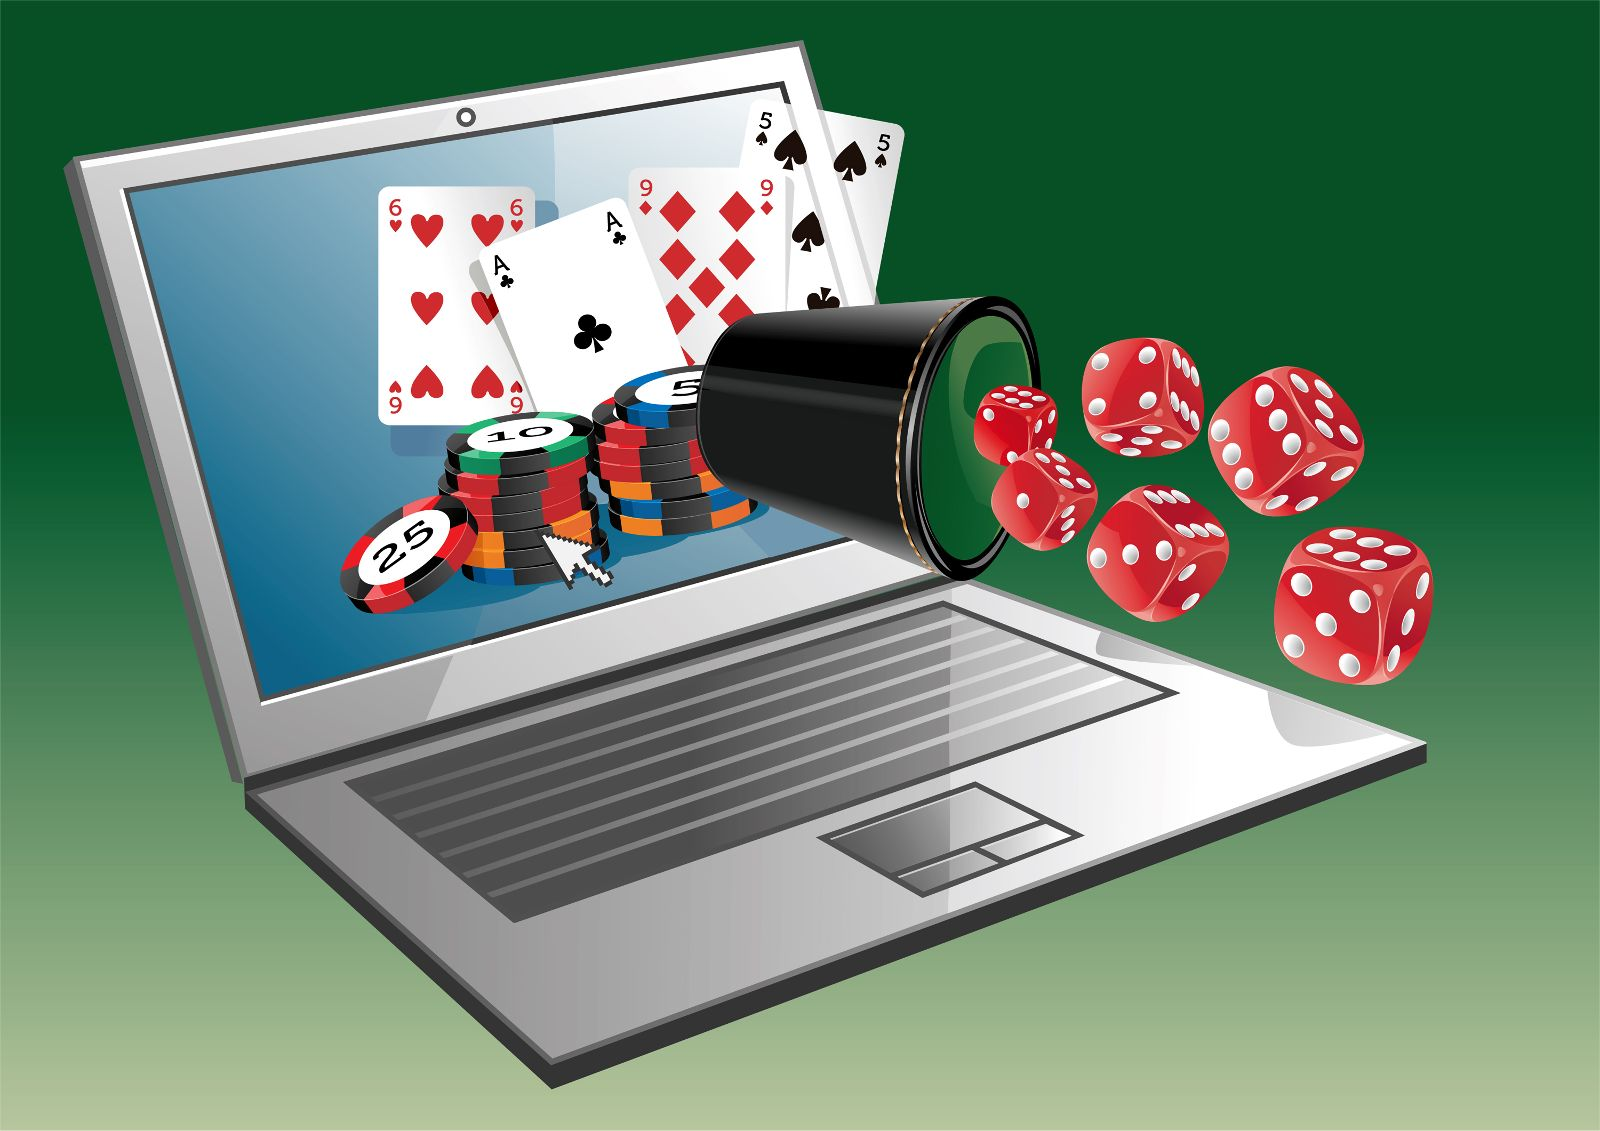 In Your Online Home Company, Are You Gambling? 1